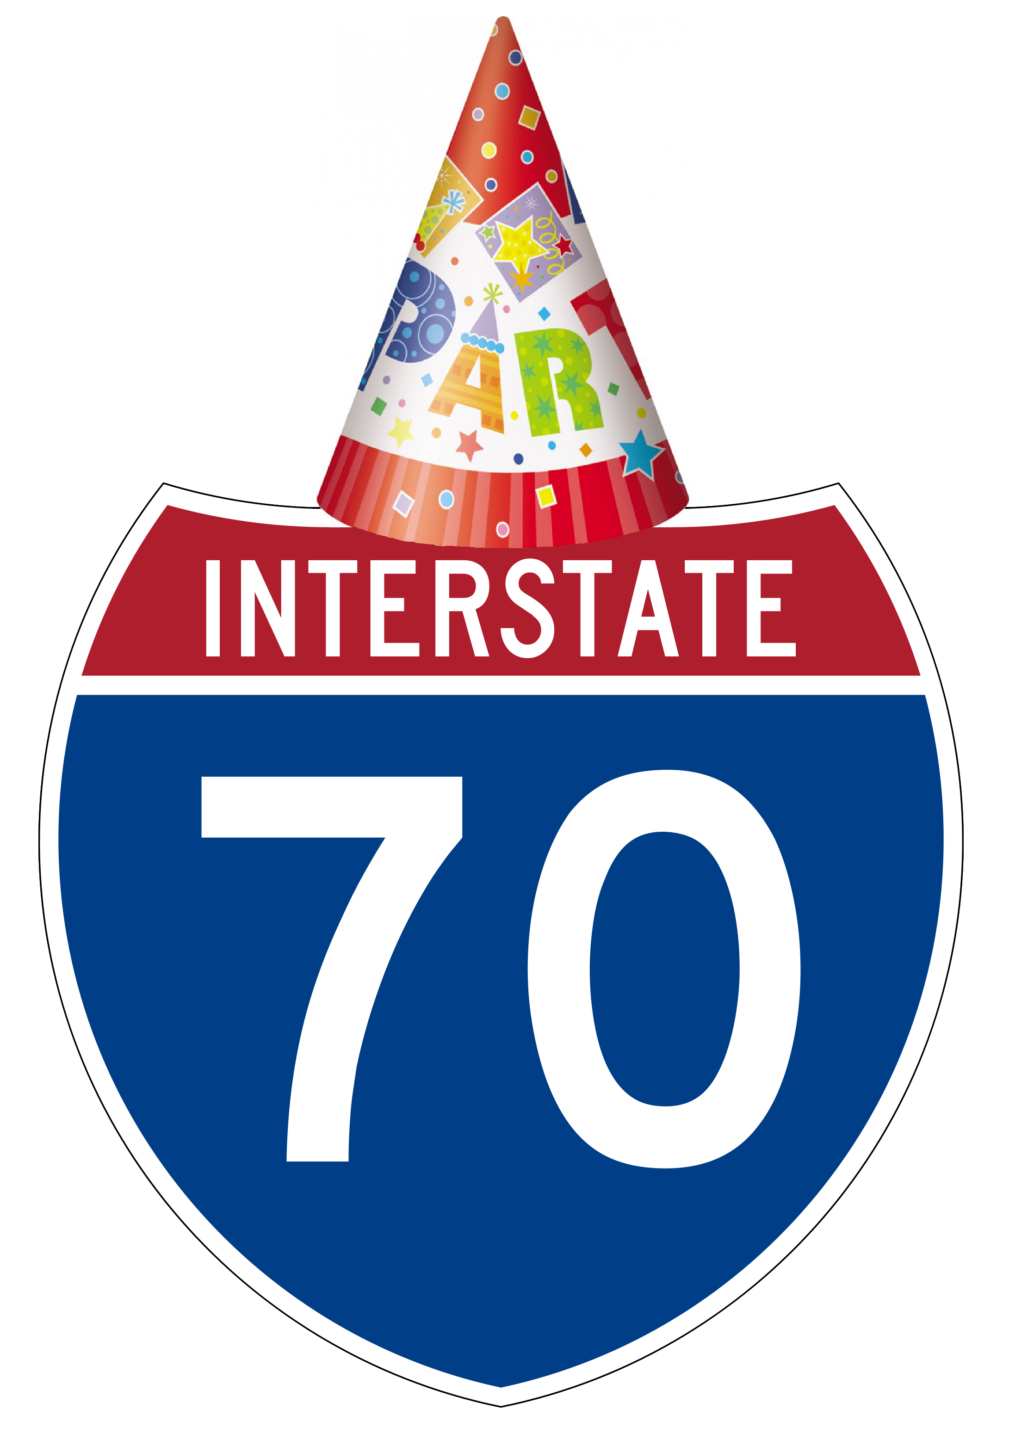 interstate 70 wearing birthday hat